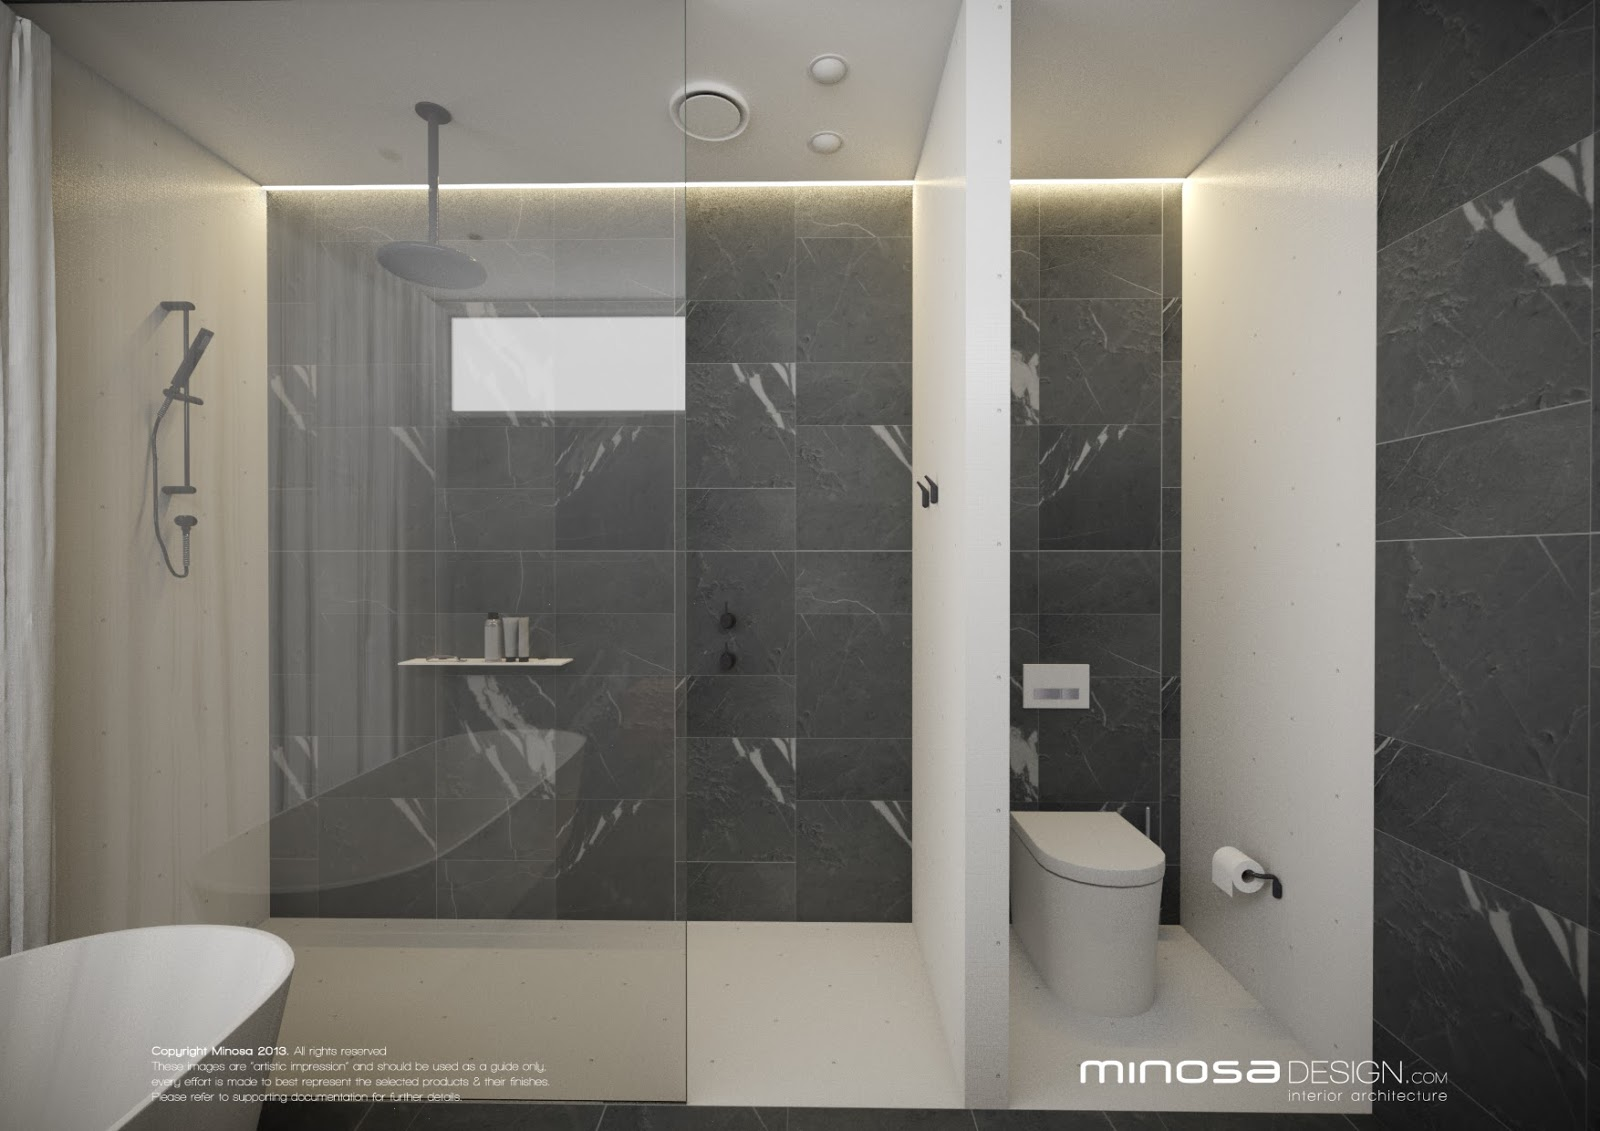 Minosa modern bathroom design to share for Latest small bathroom designs